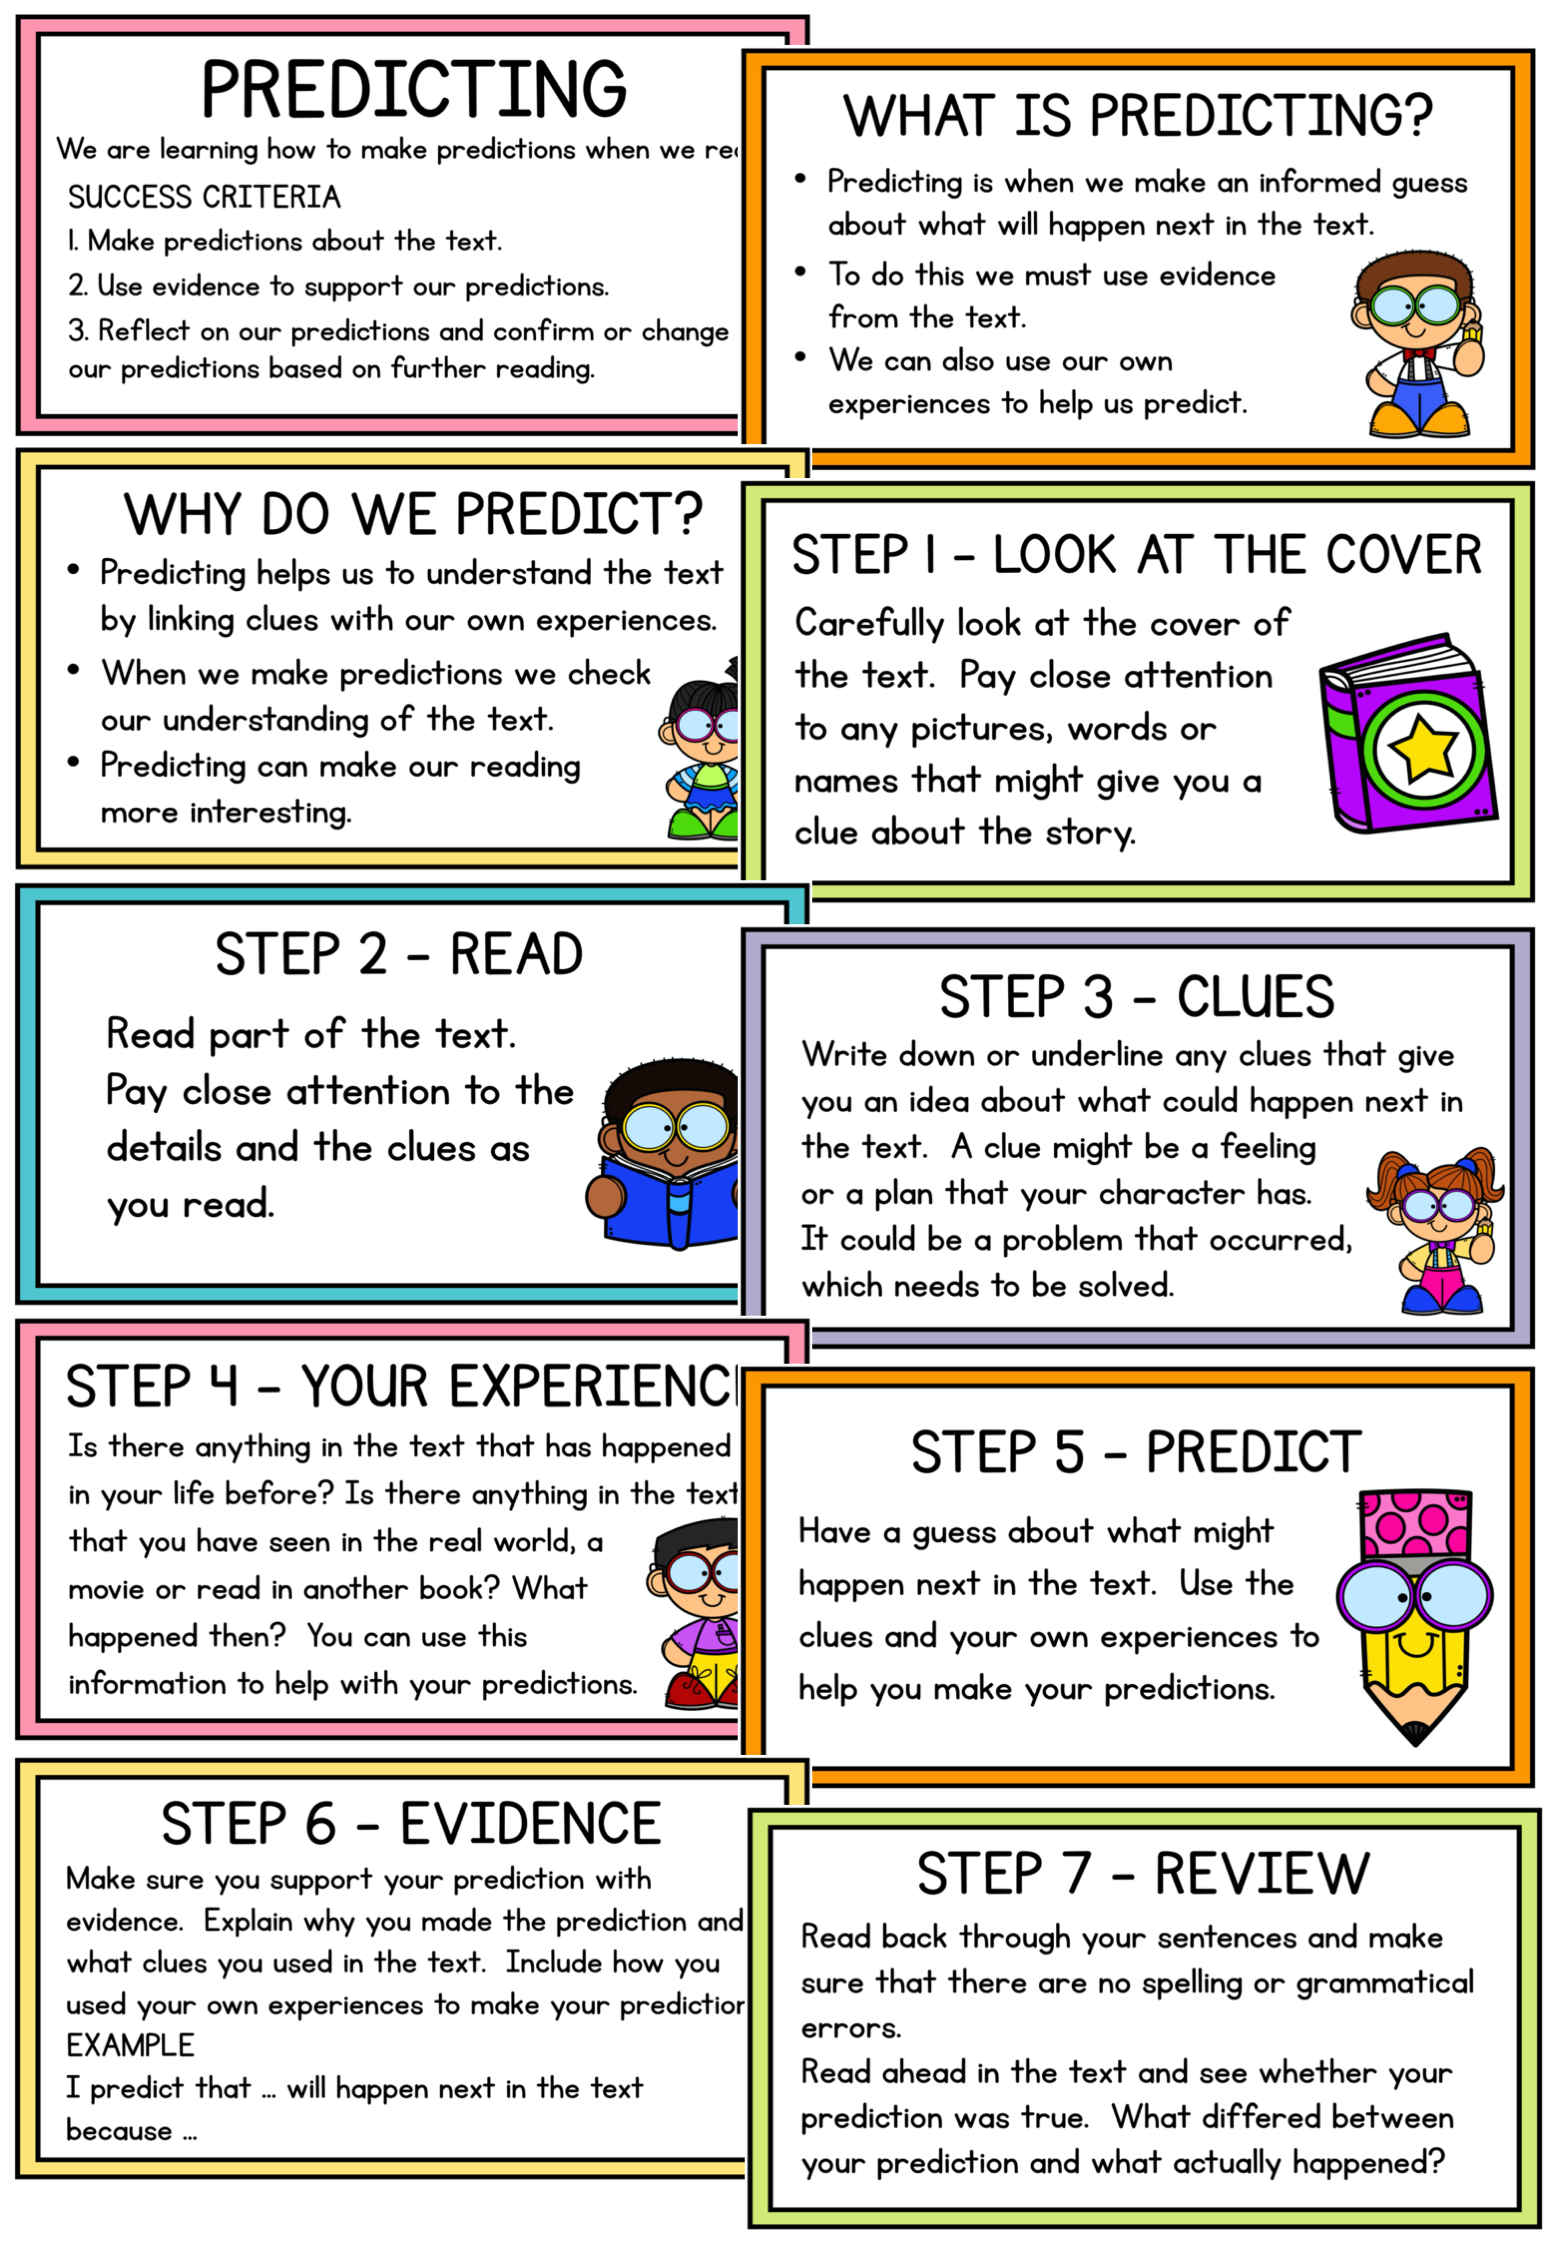 Reading Strategy Powerpoint Predicting Reading Strategies Reading Comprehension Resources Phonics Flashcards [ 2249 x 1557 Pixel ]